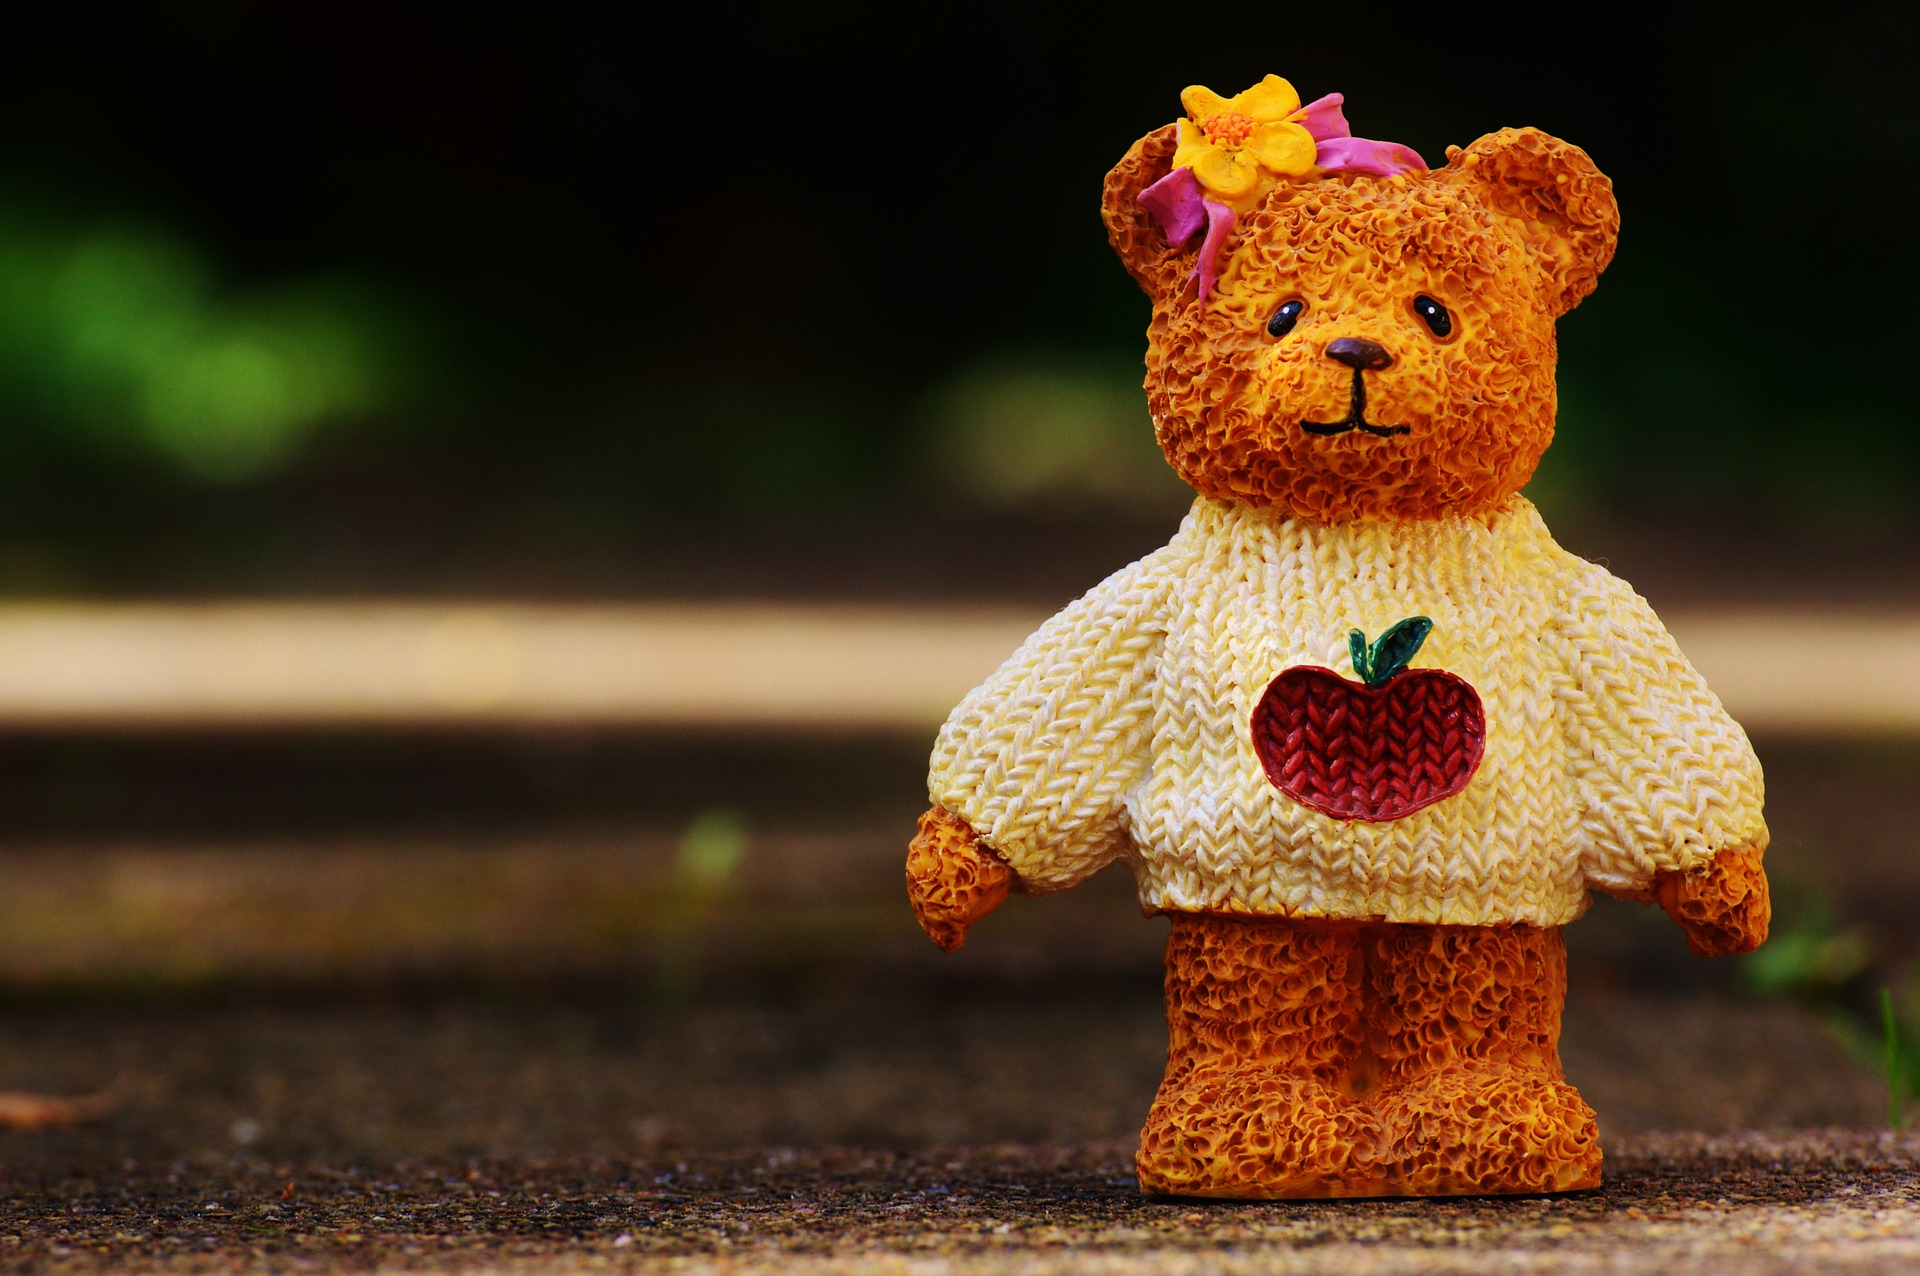 Pixabay Teddy Bear in Sweater